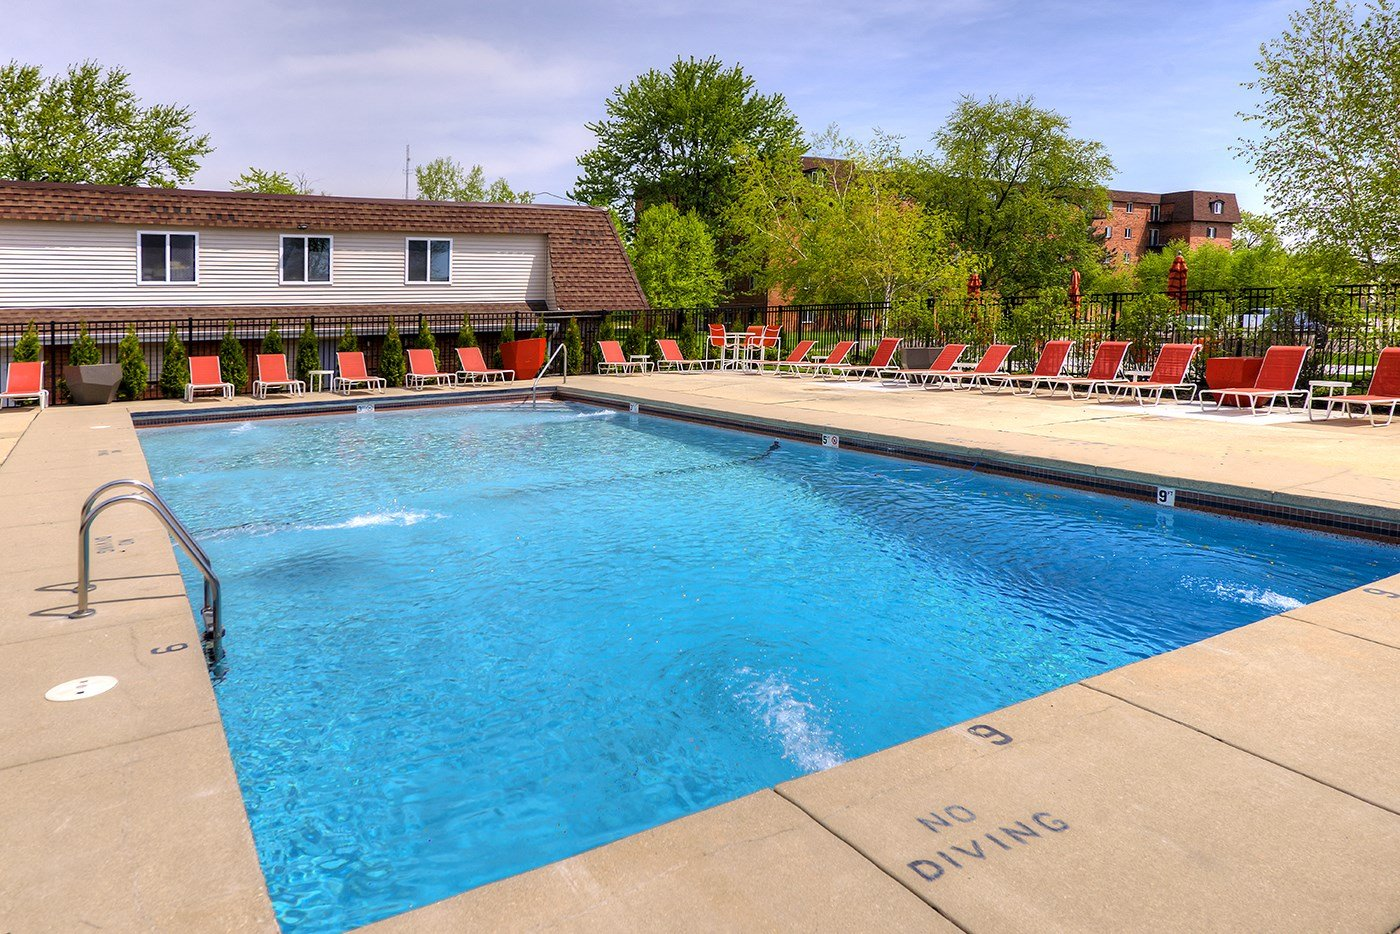 Pool with Sunning Deck, at Carol Stream Crossing, Carol Stream, IL 60188